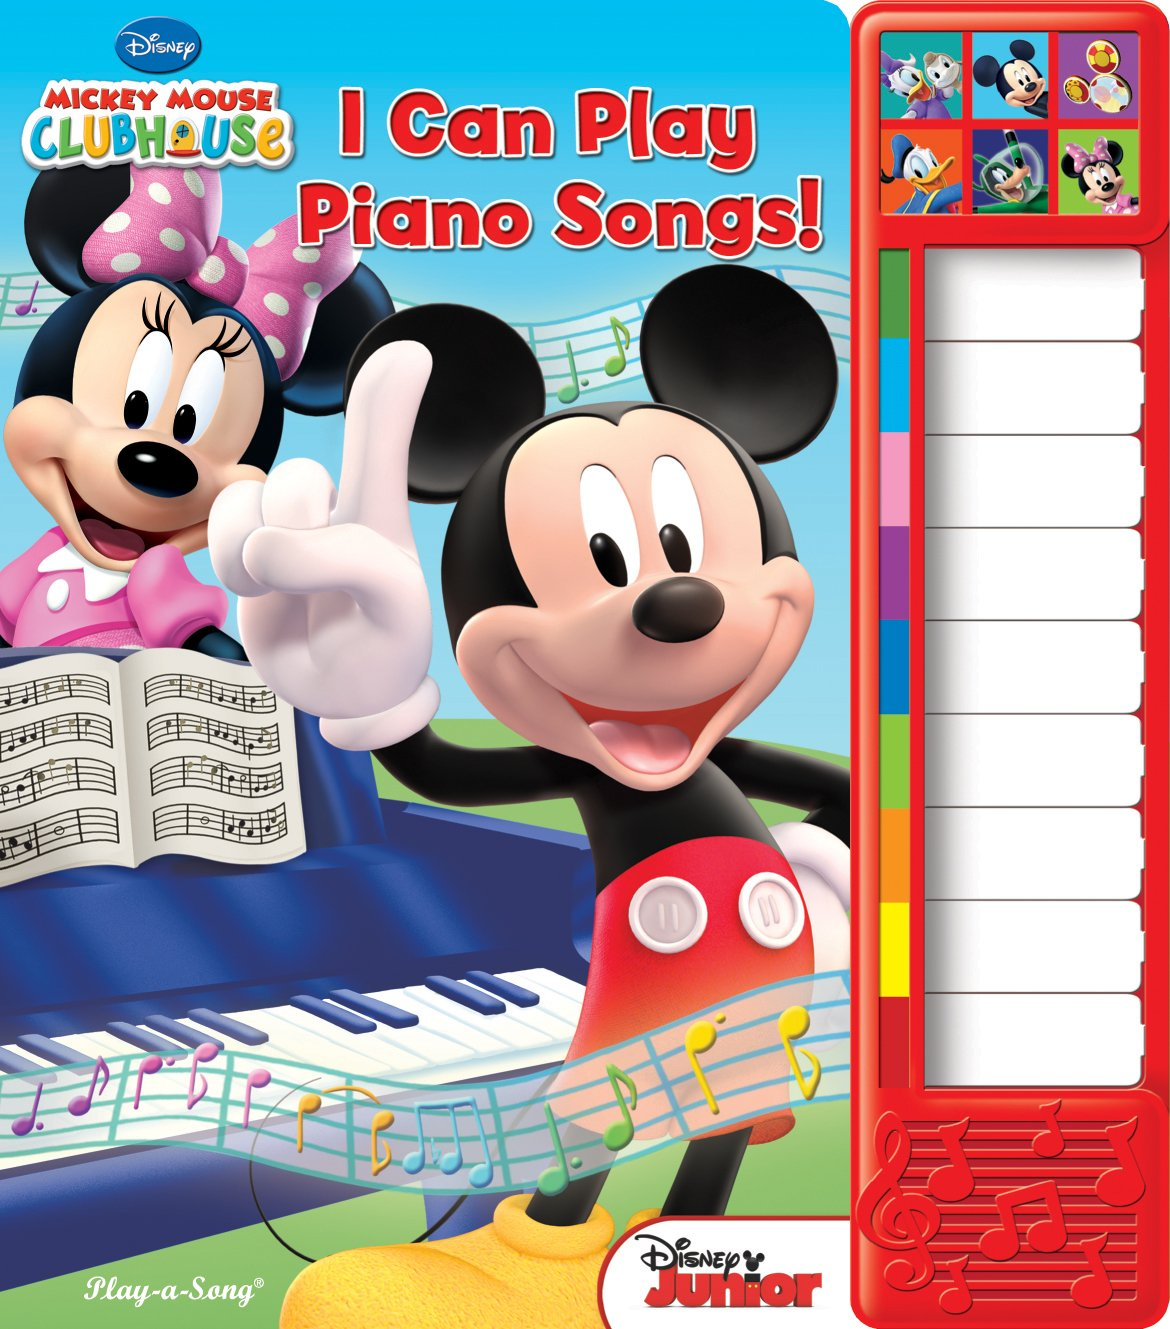 Mickey Mouse Clubhouse: I Can Play Piano Songs!: Piano Sound Book (Mickey Mouse Clubhouse: Play-a-Song) ebook